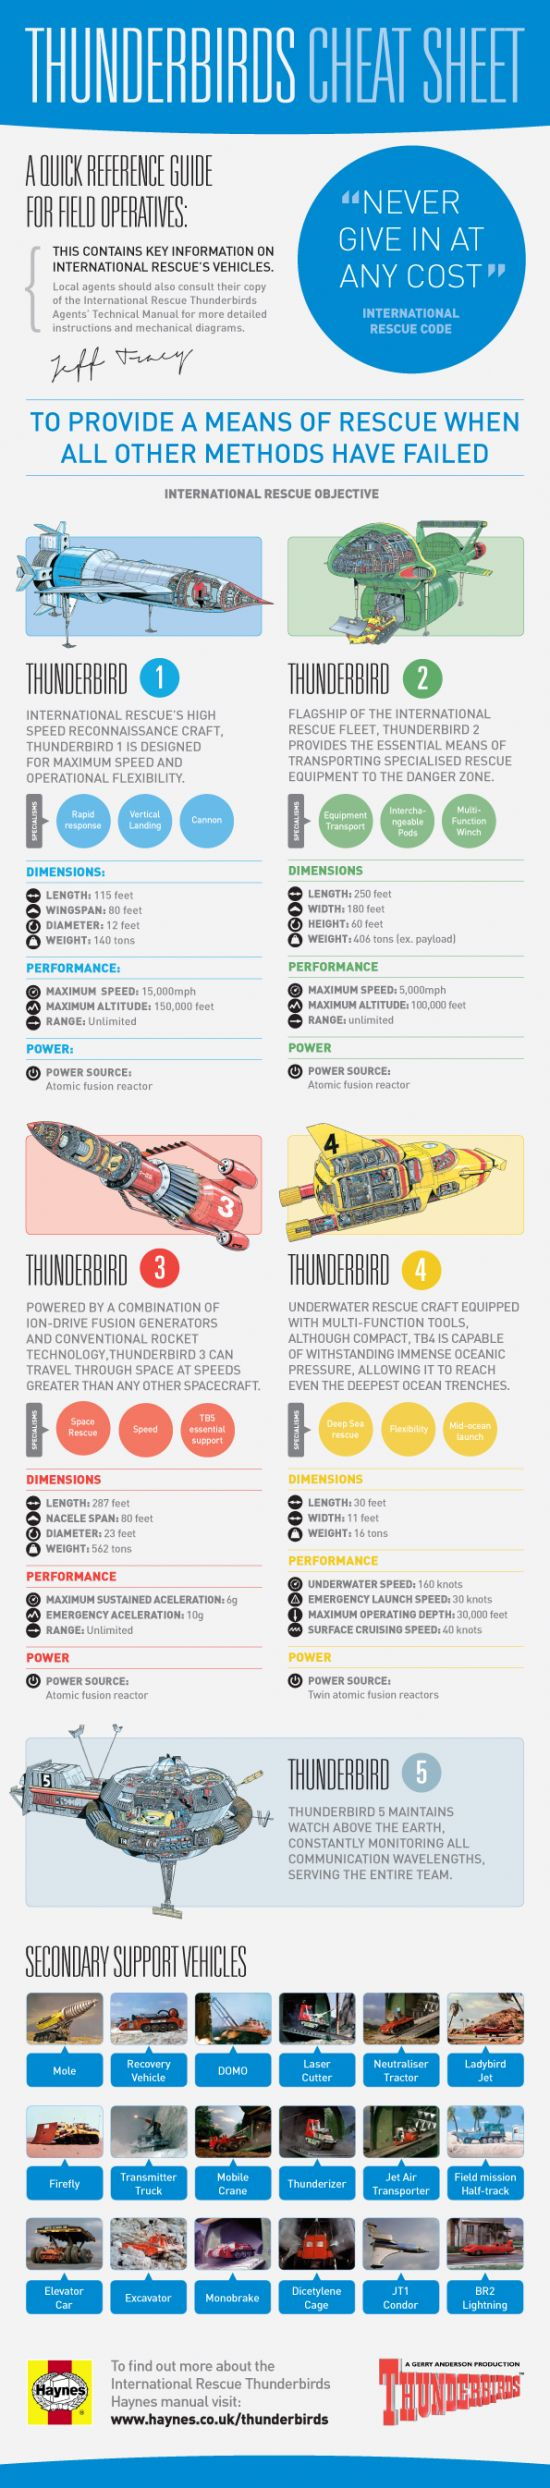 INFOGRAPHIC: THUNDERBIRDS CHEAT SHEET    A quick reference guide from Haynes, detailing stats and specs on all of the key Thunderbirds rescue vehicles and their crew. Before attempting complex repairs, agents should refer to the International Rescue Thunderbirds Manual.